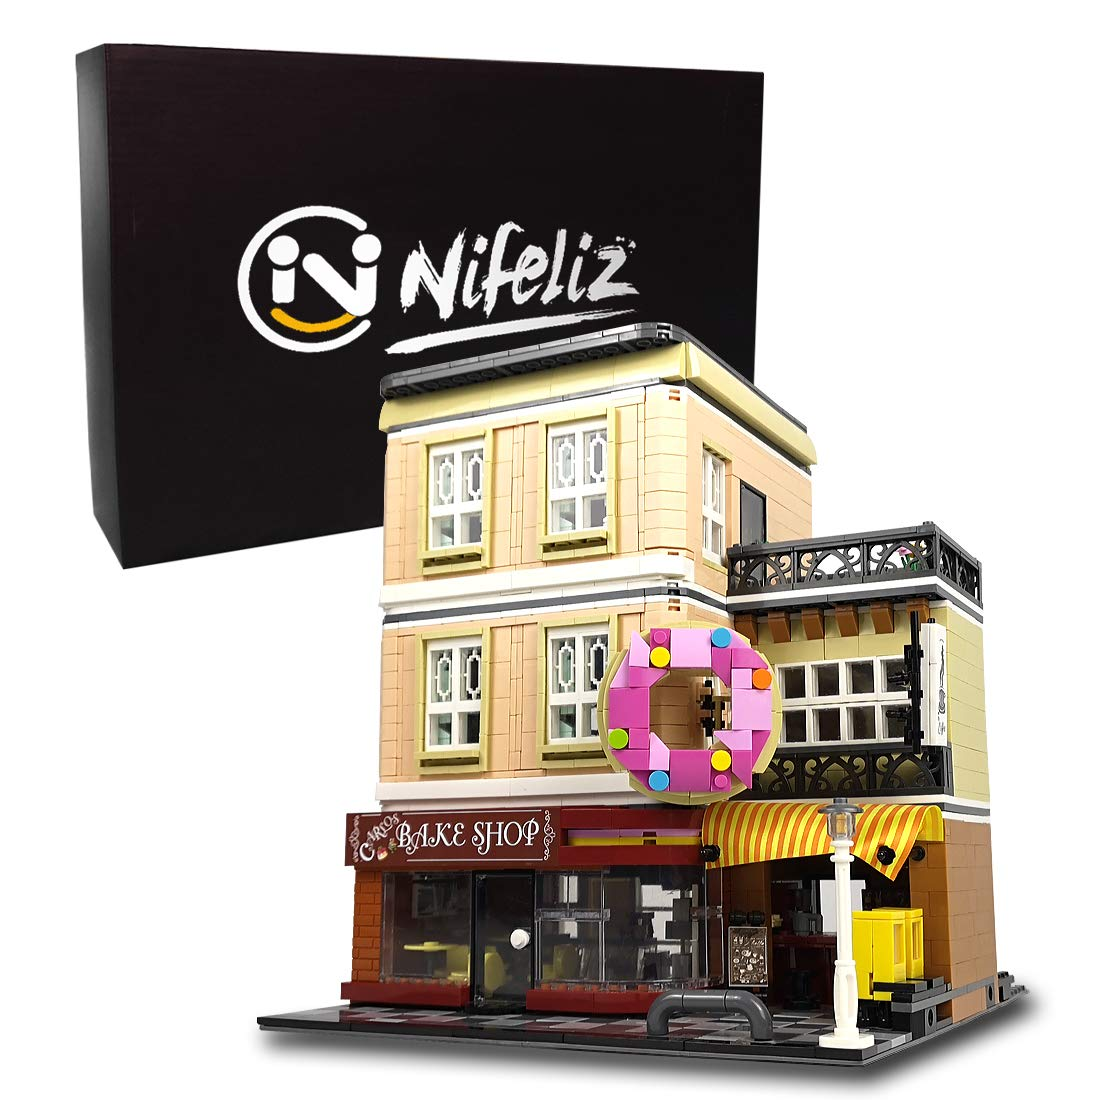 Nifeliz Street Bake Shop MOC Building Blocks and Engineering Toy, Construction Set to Build, Model Set and Assembly Toy for Teens and Adult(2919 Pcs)